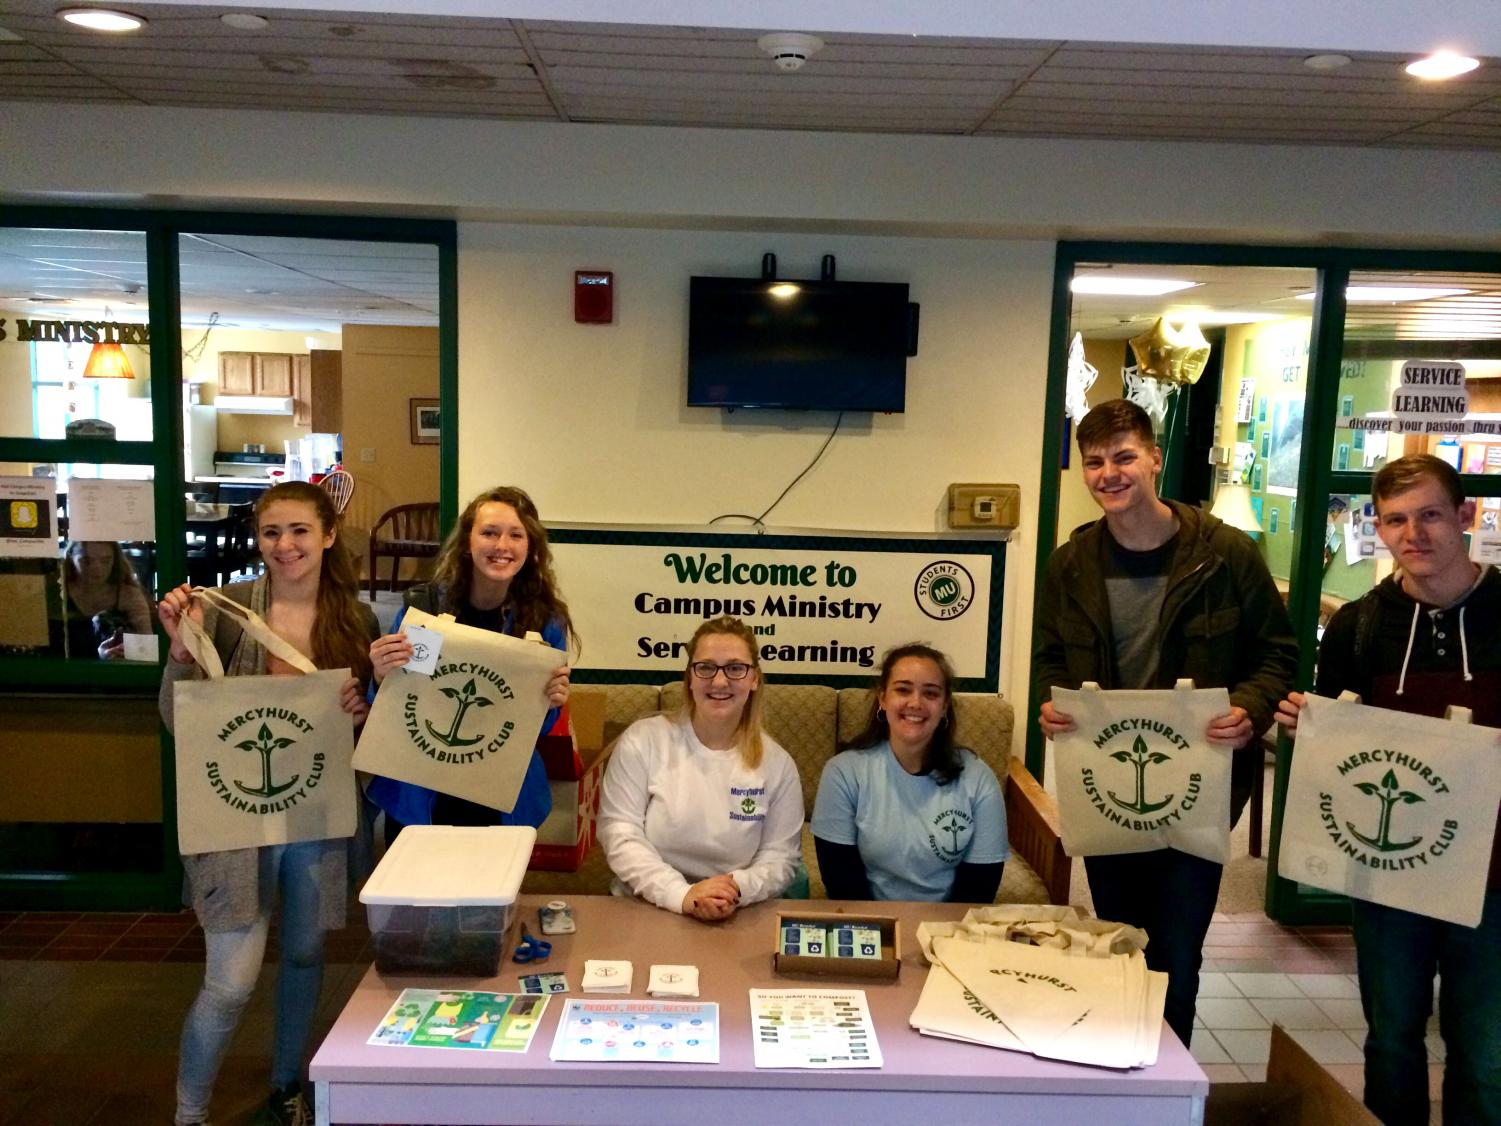 Sustainability Club members Emma Mader and Elly Buch, seated at center, help to hand out information and resources about recycling and composting in the Student Union. Freshmen Carly Holtzman, Julia Wrest, Nathan Brand and David Steets received free reusable tote bags for their involvement.